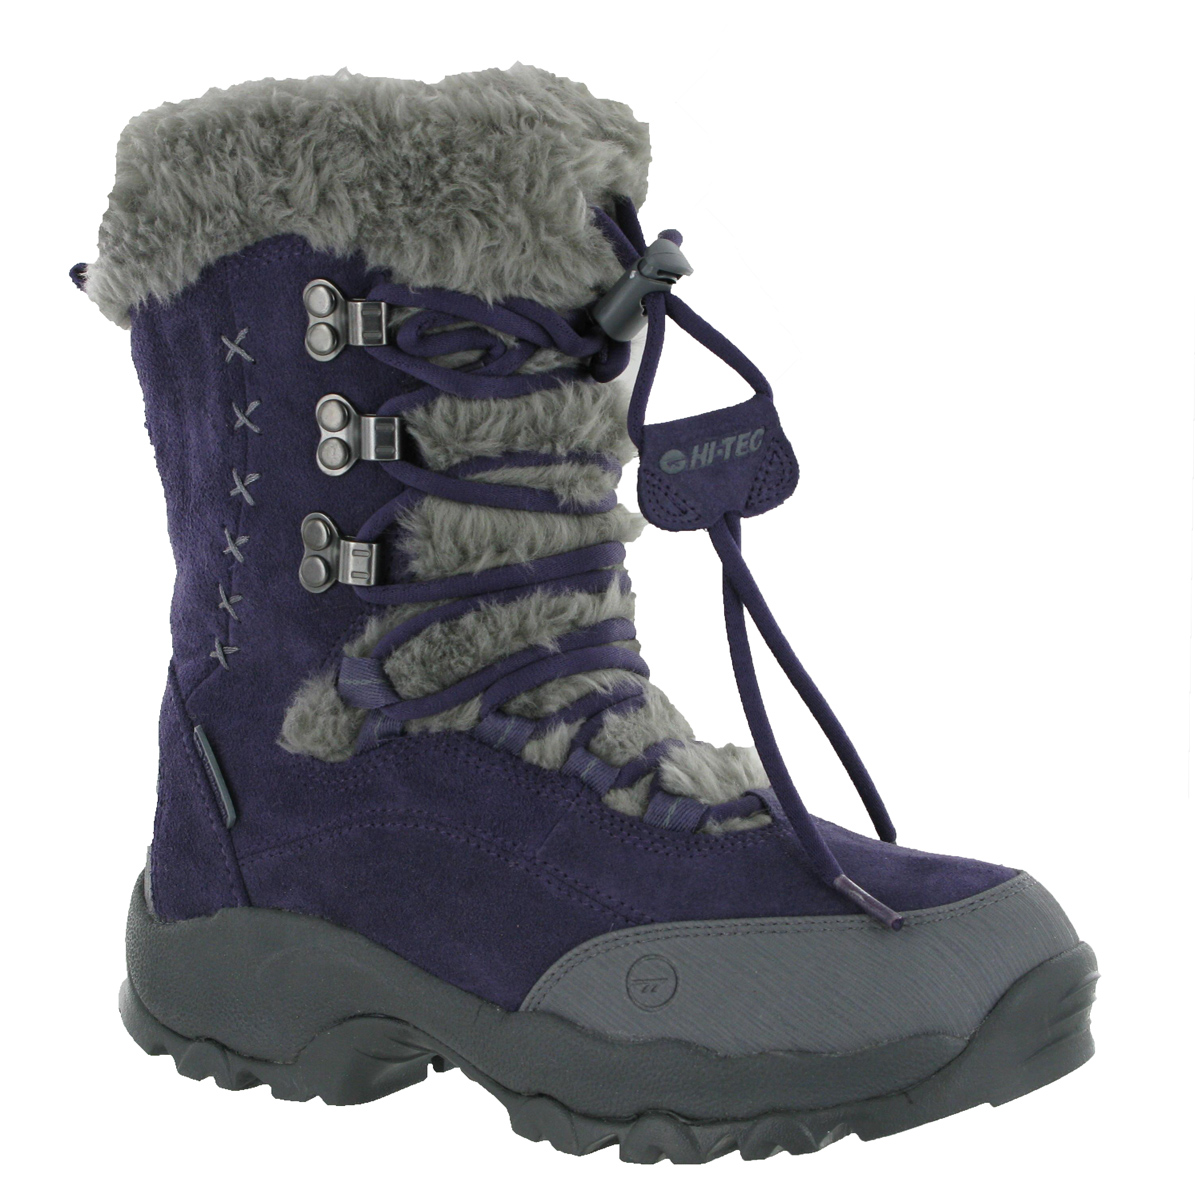 Ladies Waterproof Snow Boots Size 7 | Homewood Mountain Ski Resort